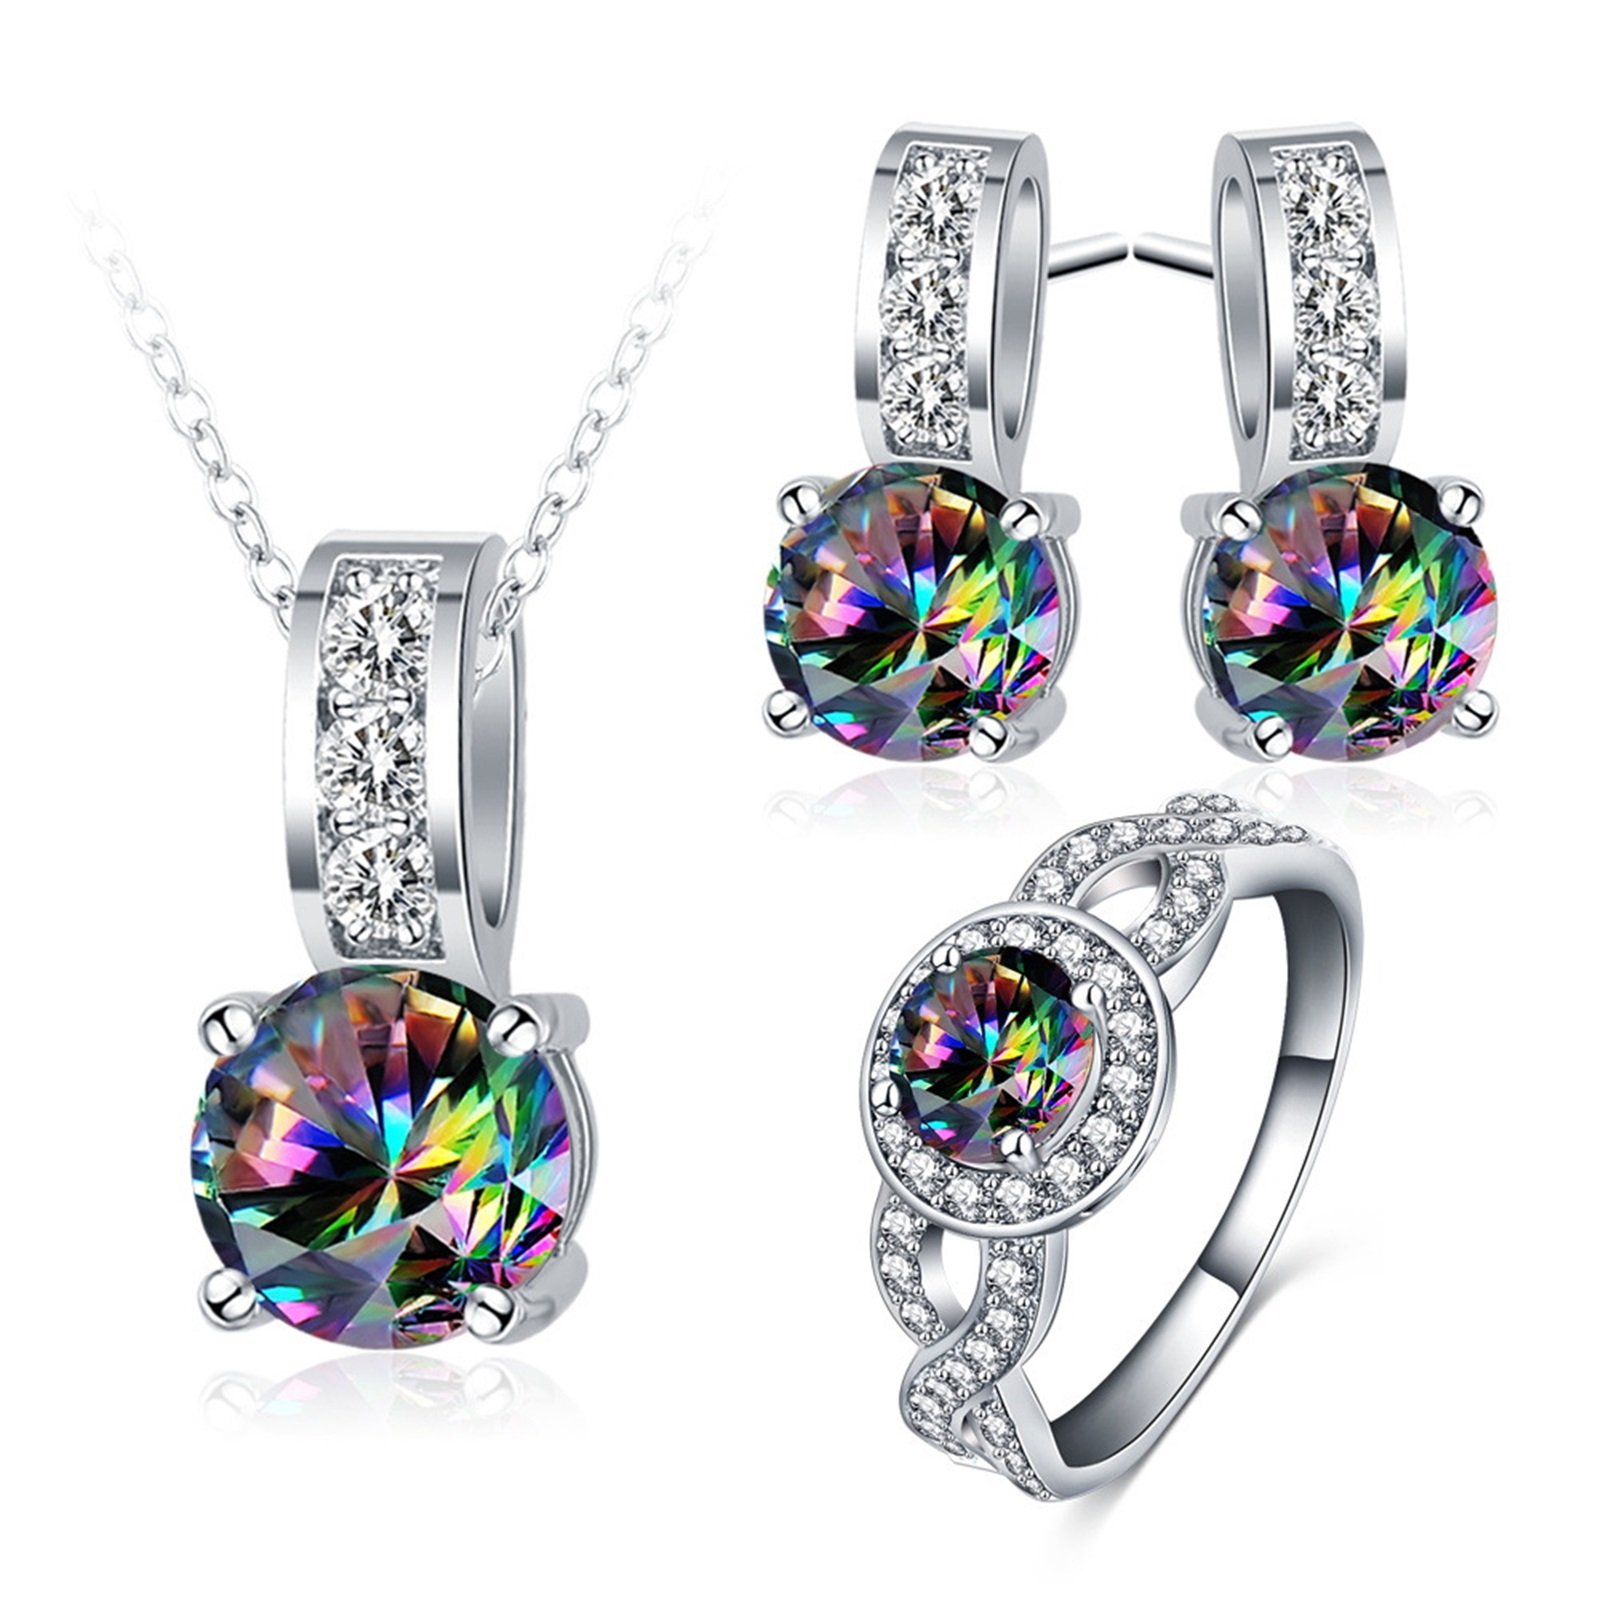 Daesar Women Girl Necklace Earrings Ring Jewelry Set Colorful Cubic Zirconia Ring Size 9